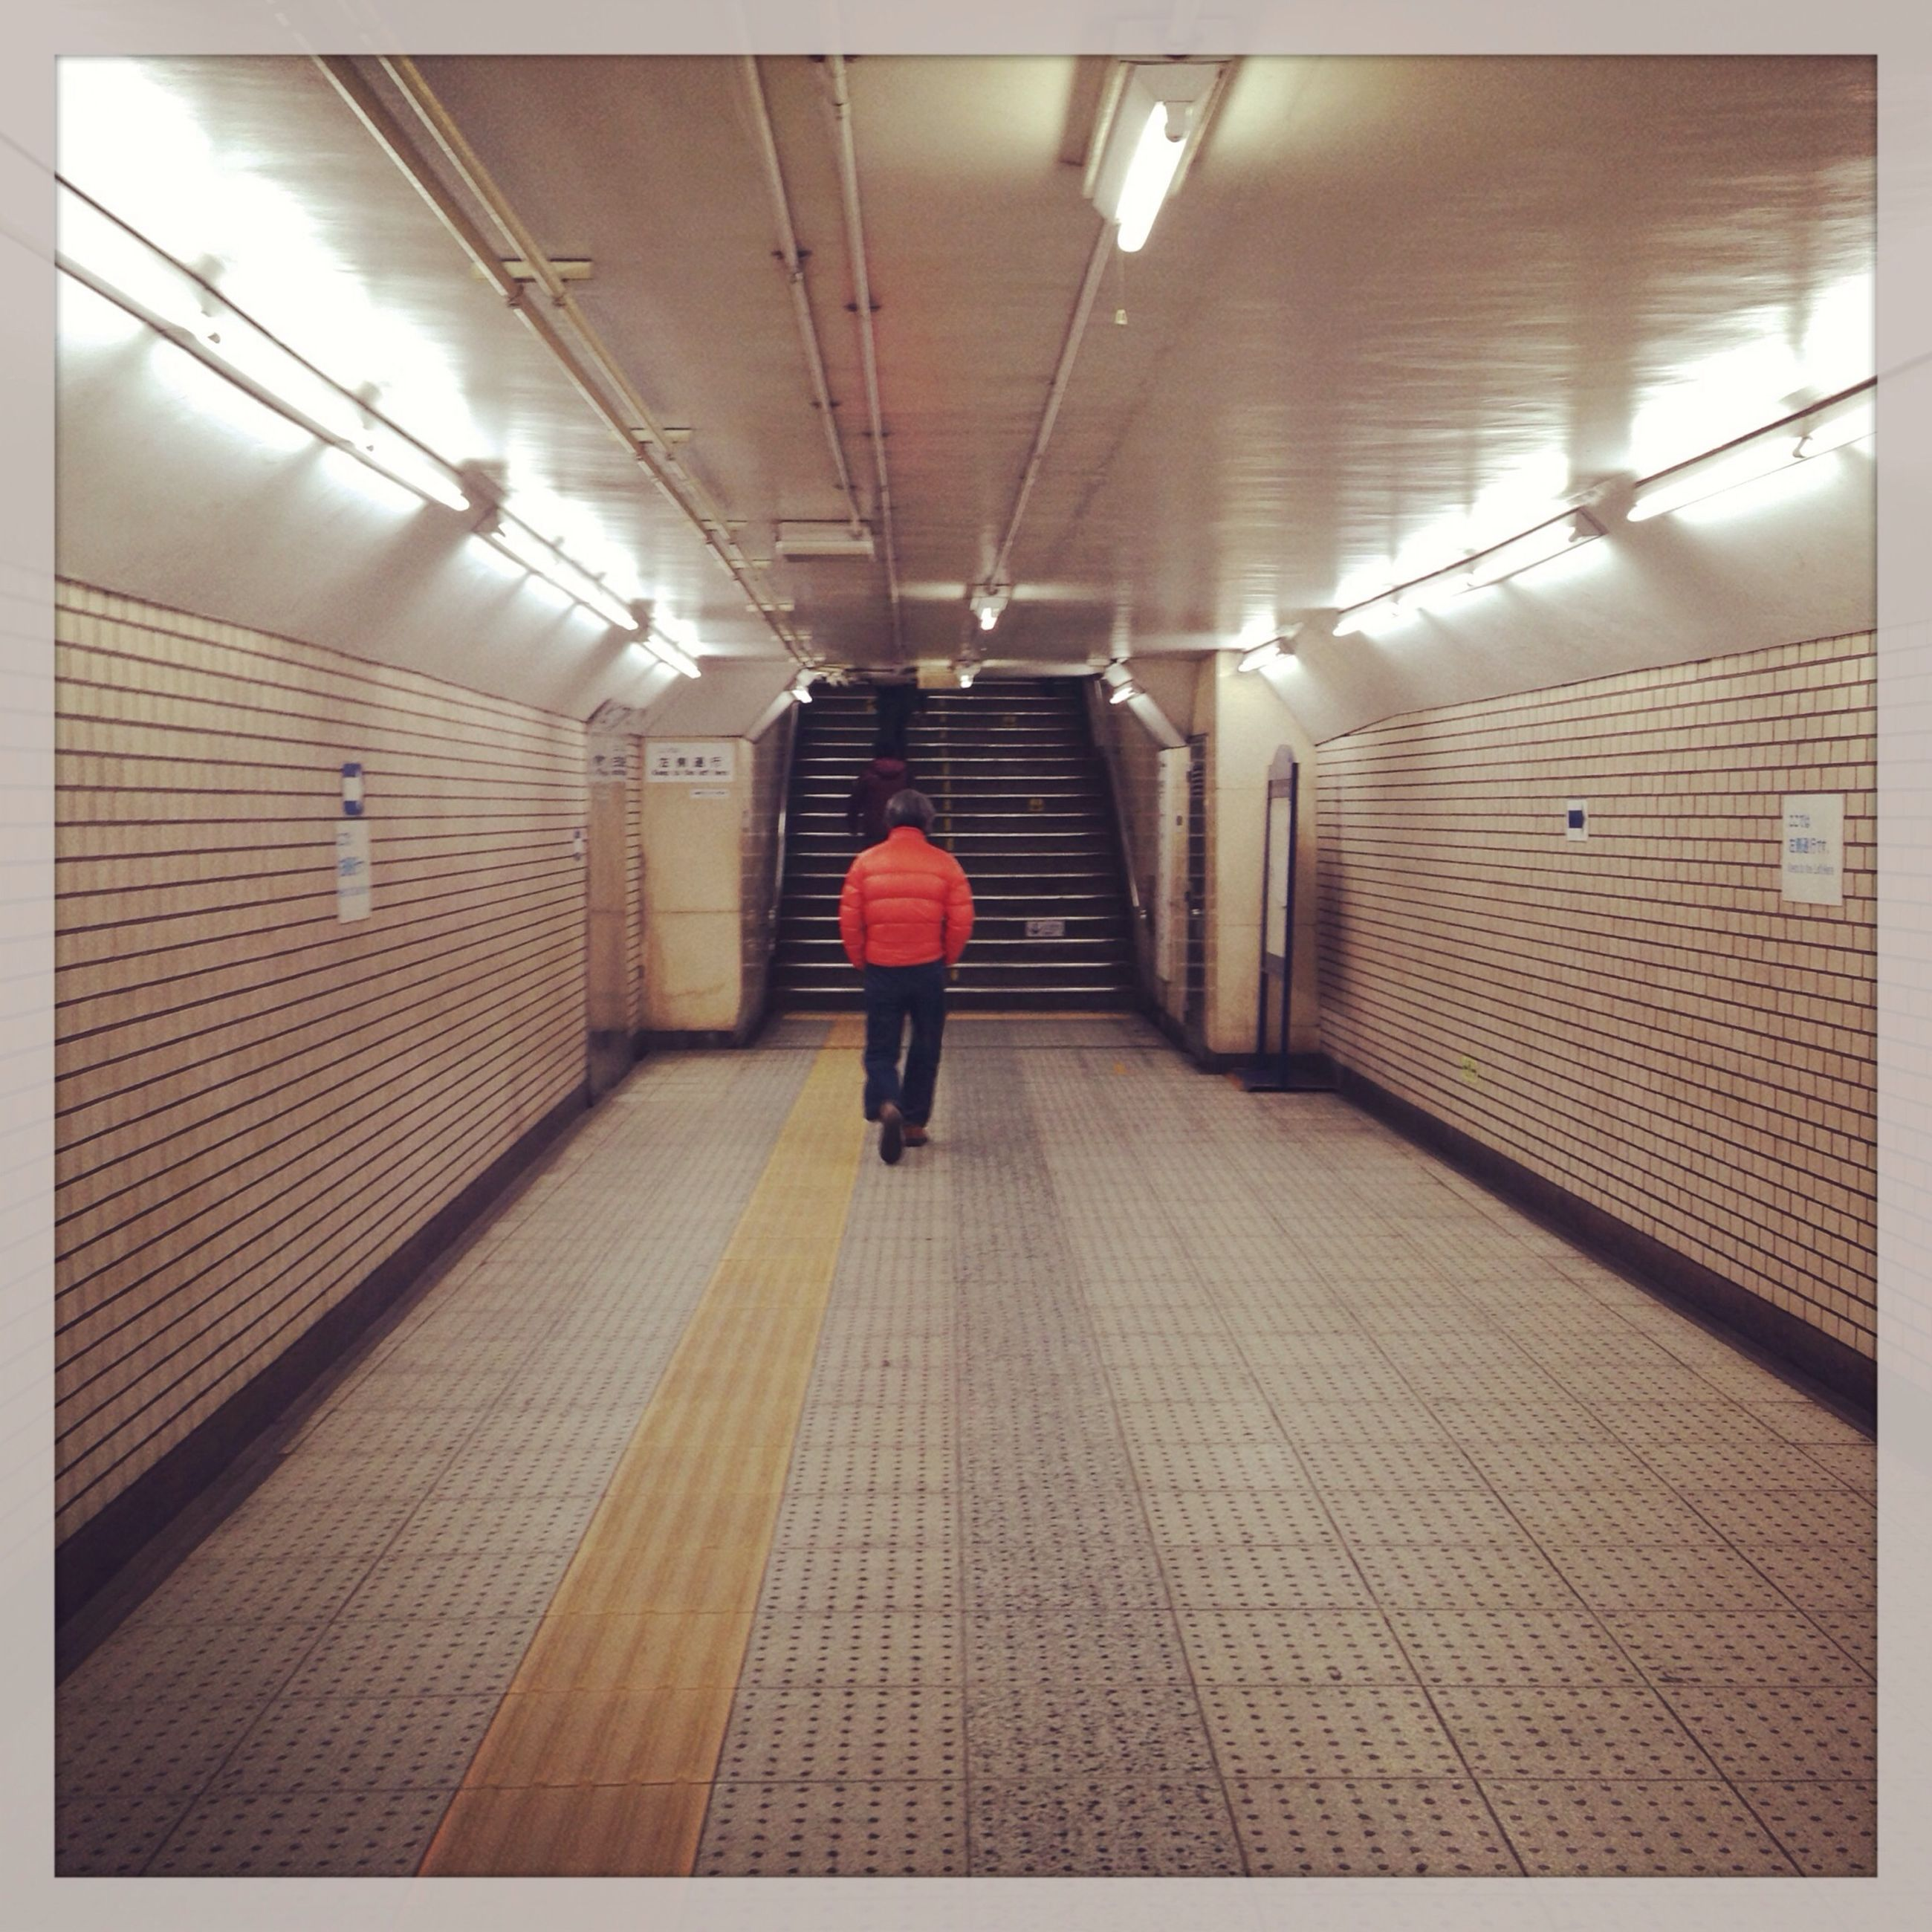 indoors, the way forward, corridor, full length, walking, rear view, architecture, illuminated, lifestyles, men, built structure, subway, tunnel, tiled floor, wall - building feature, flooring, ceiling, diminishing perspective